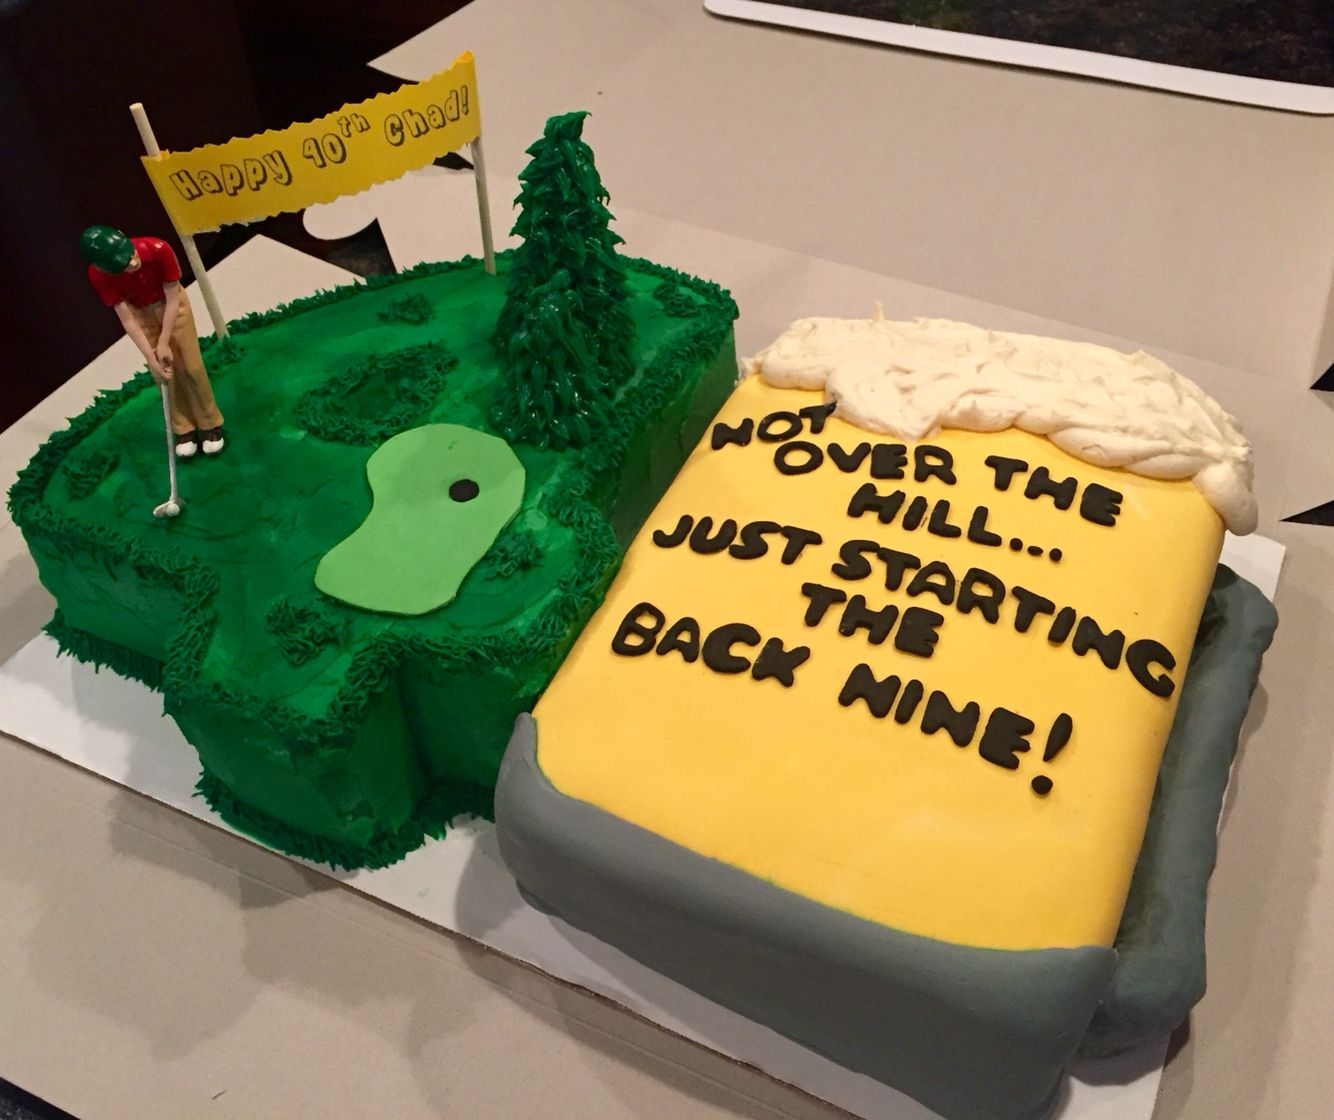 Fabulous Golf And Beer Themed Cake For 40Th Birthday Dad Birthday Cakes Funny Birthday Cards Online Alyptdamsfinfo